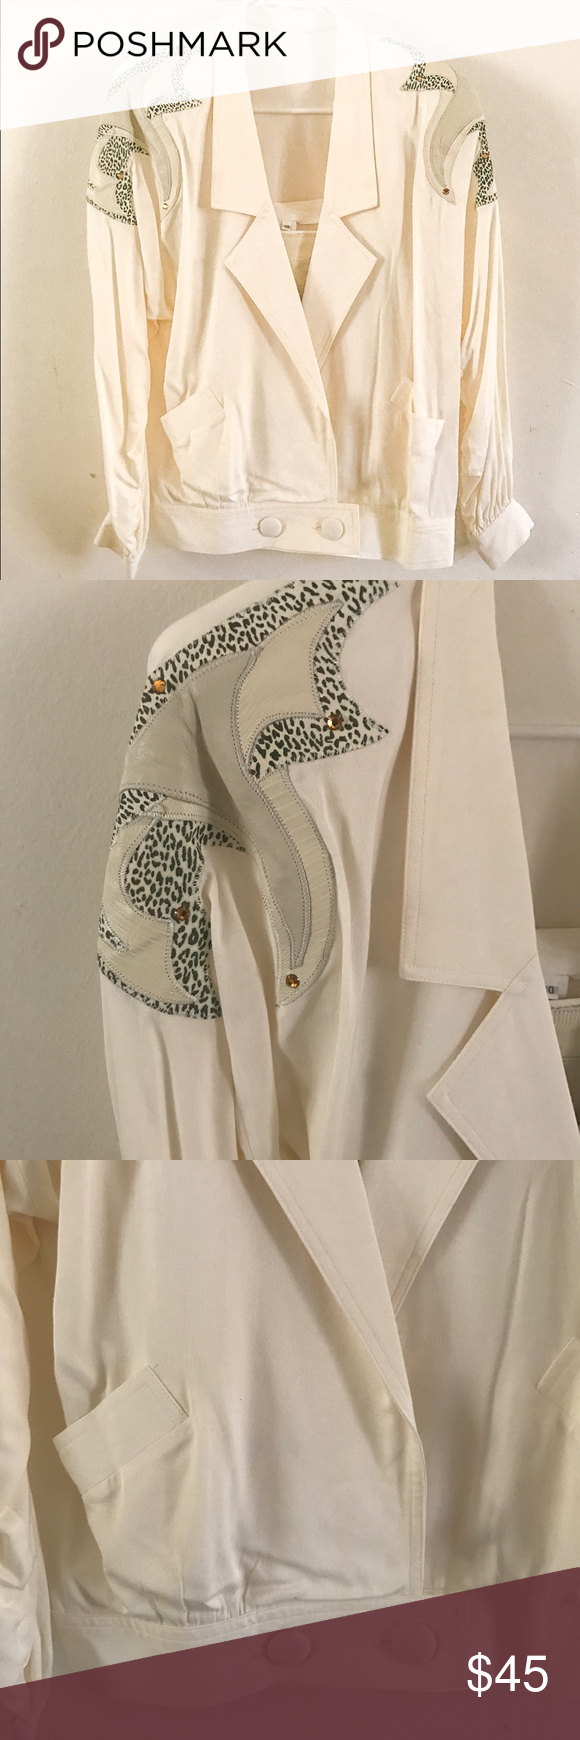 80s White Pantsuit with leather accents size 10 #whitepantsuit Spotted while shopping on Poshmark: 80s White Pantsuit with leather accents size 10! #poshmark #fashion #shopping #style #Other #whitepantsuit